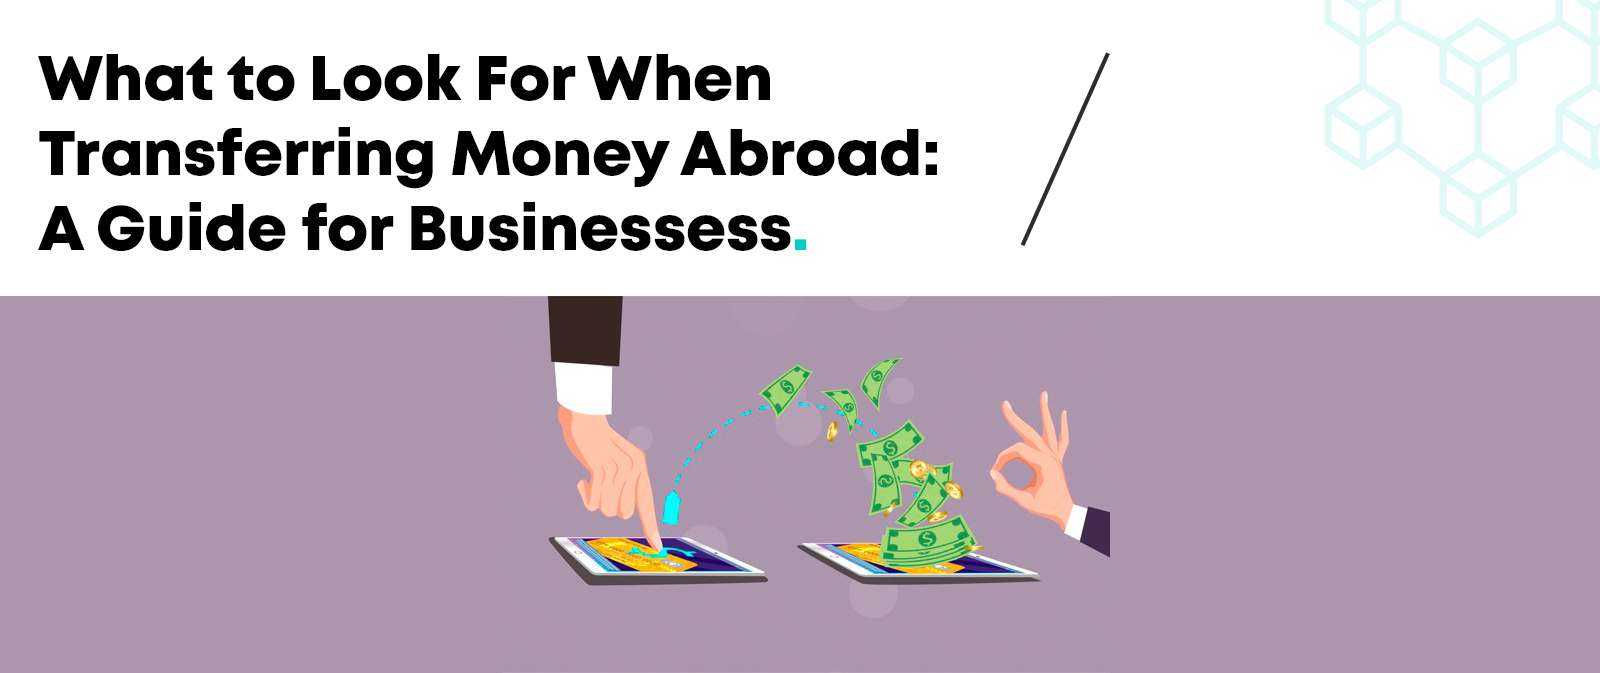 What to Look For When Transferring Money Abroad: A Guide for Businesses